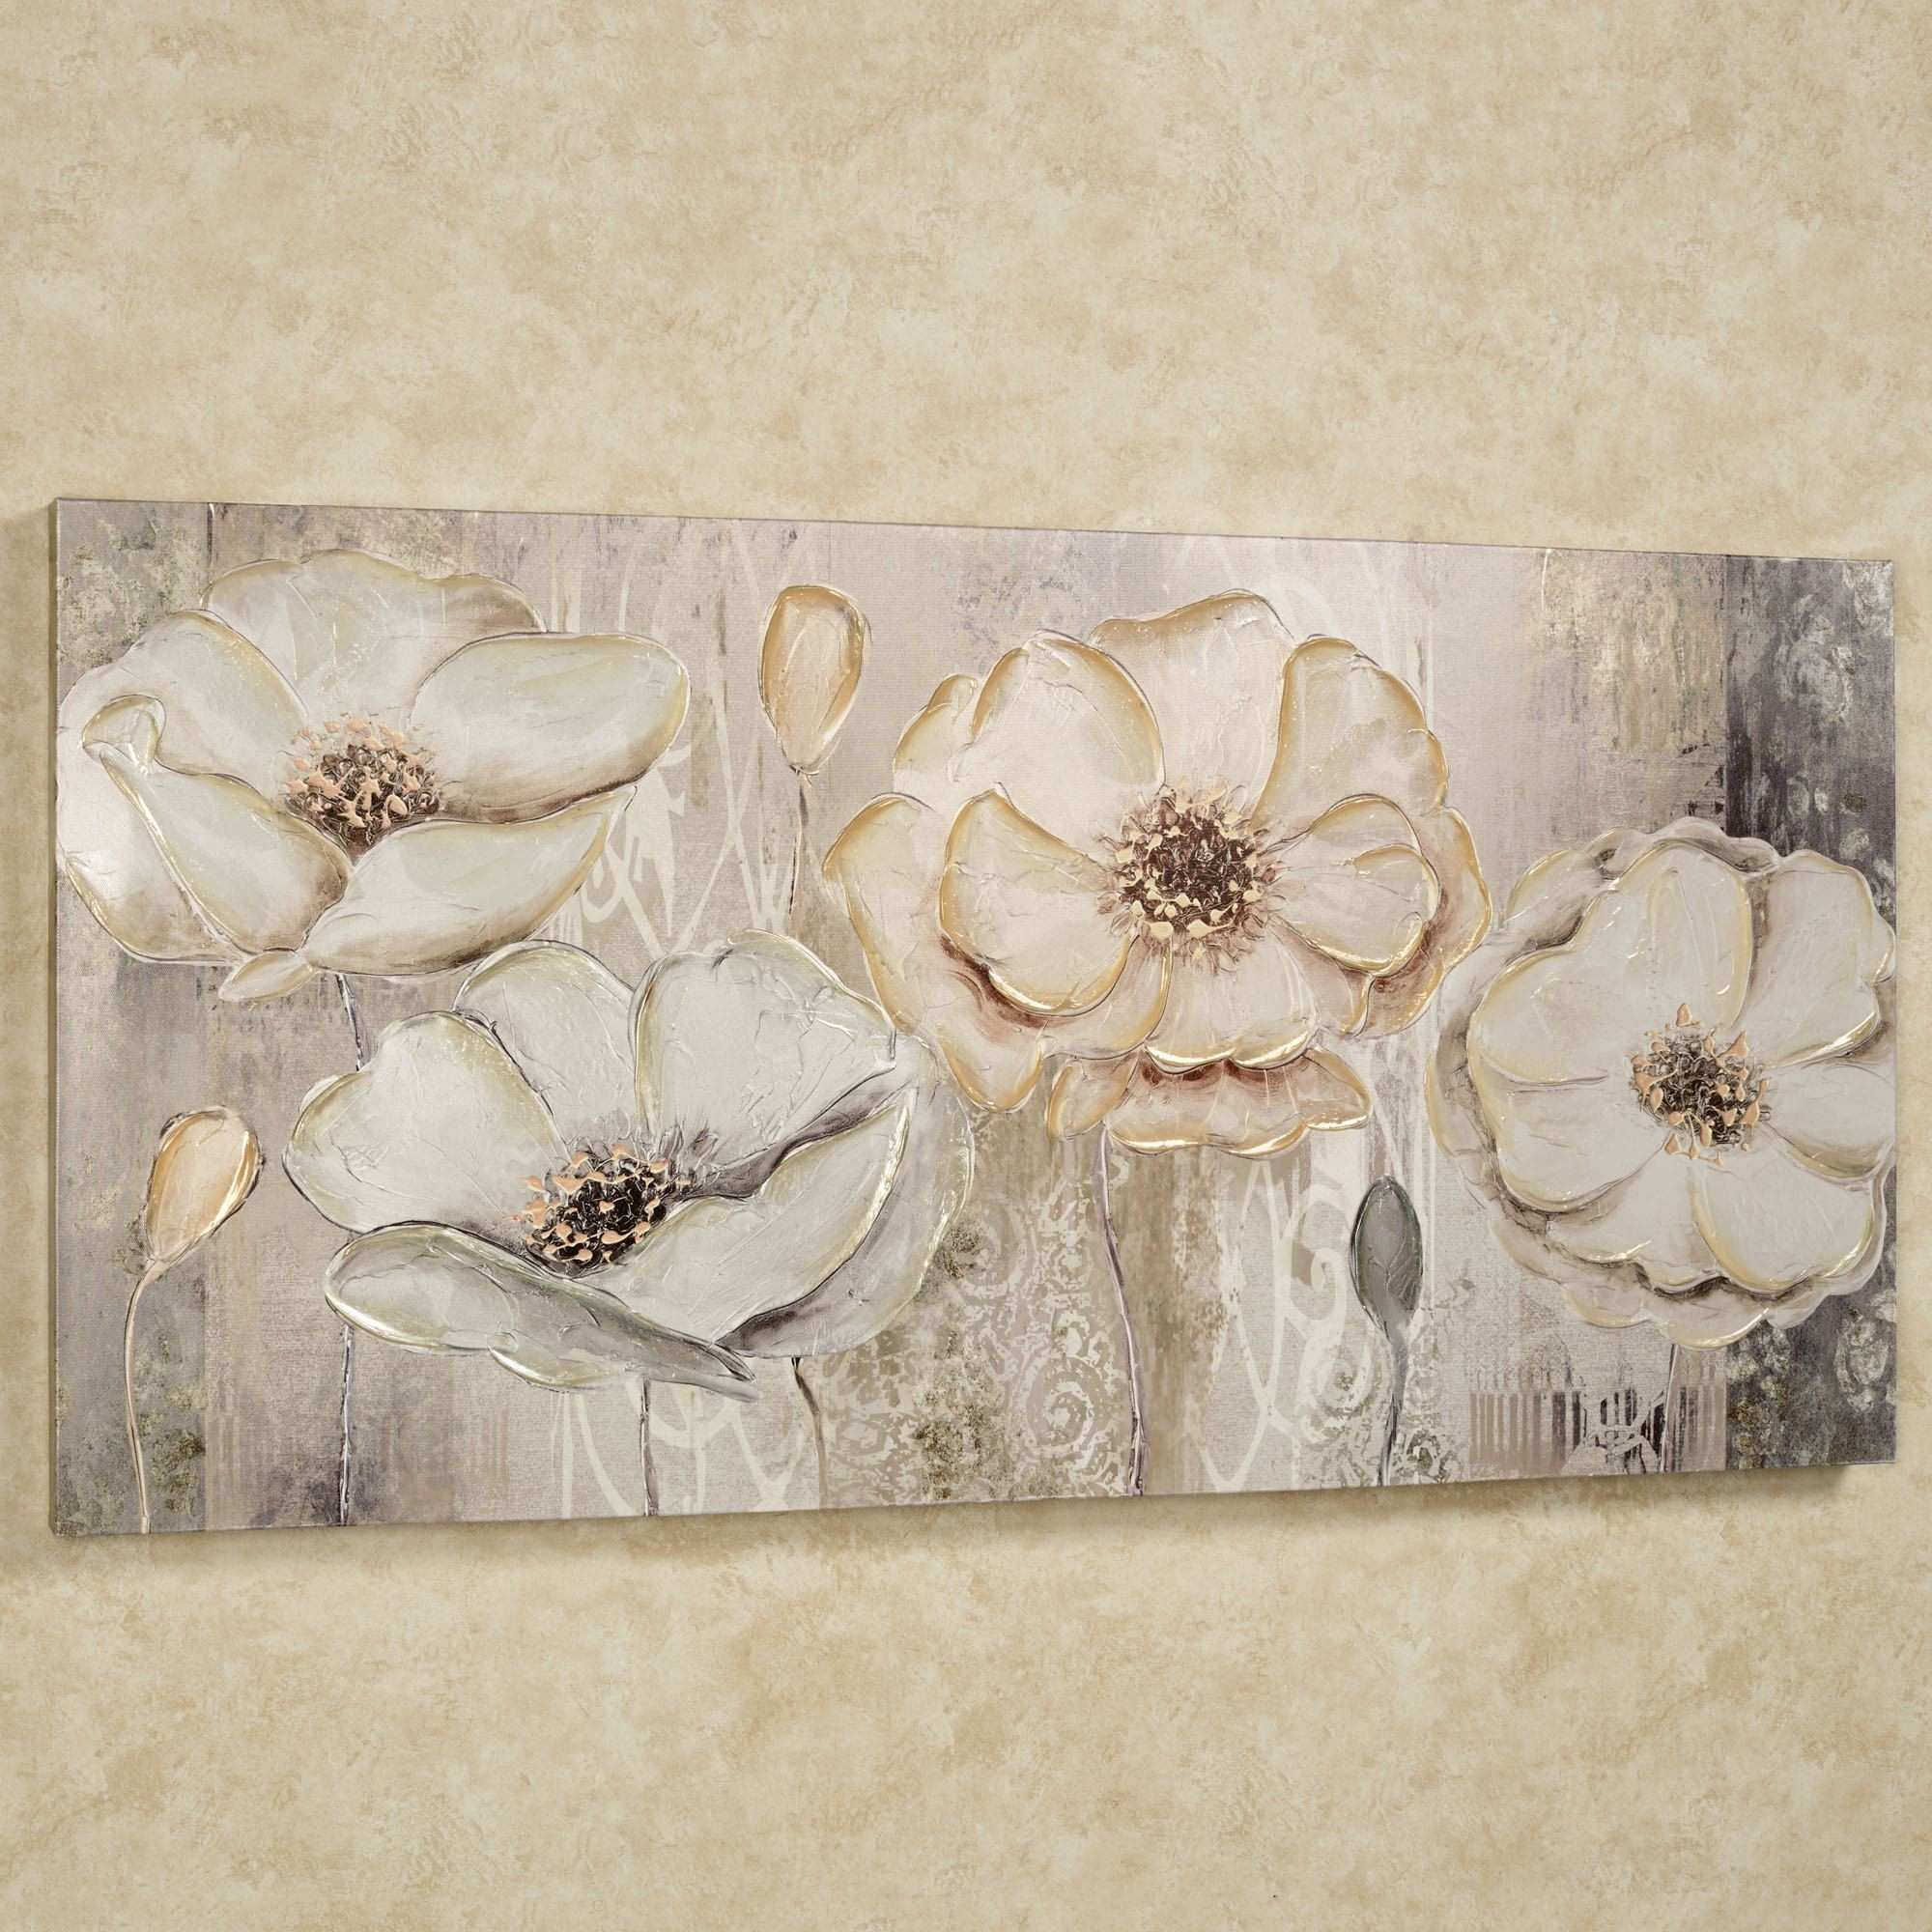 Image Gallery of Floral Wall Art Canvas View 15 of 15 s